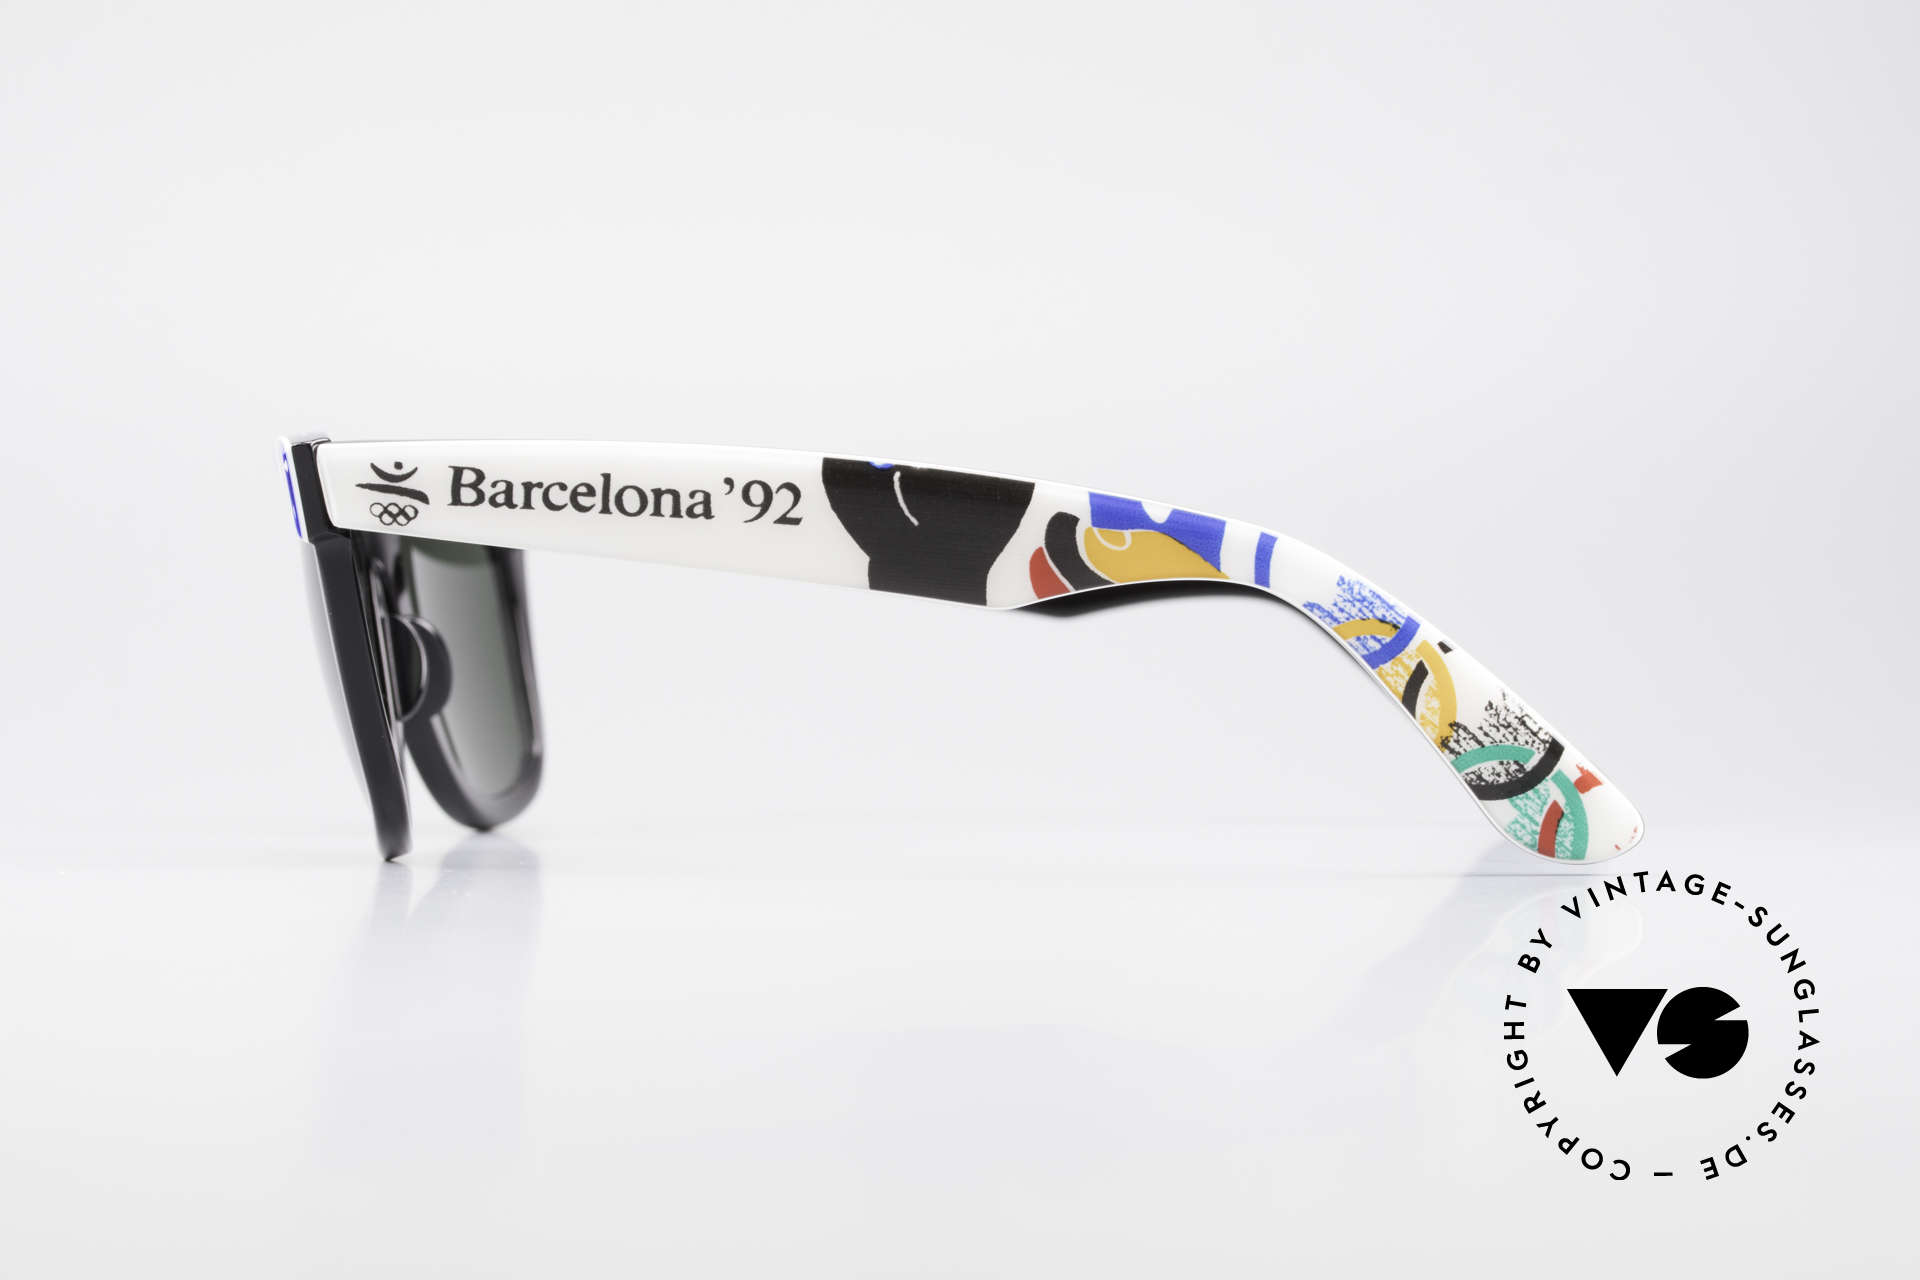 Ray Ban Wayfarer I Olympic Games Barcelona, NO RETRO sunglasses, but an authentic USA-original, Made for Men and Women